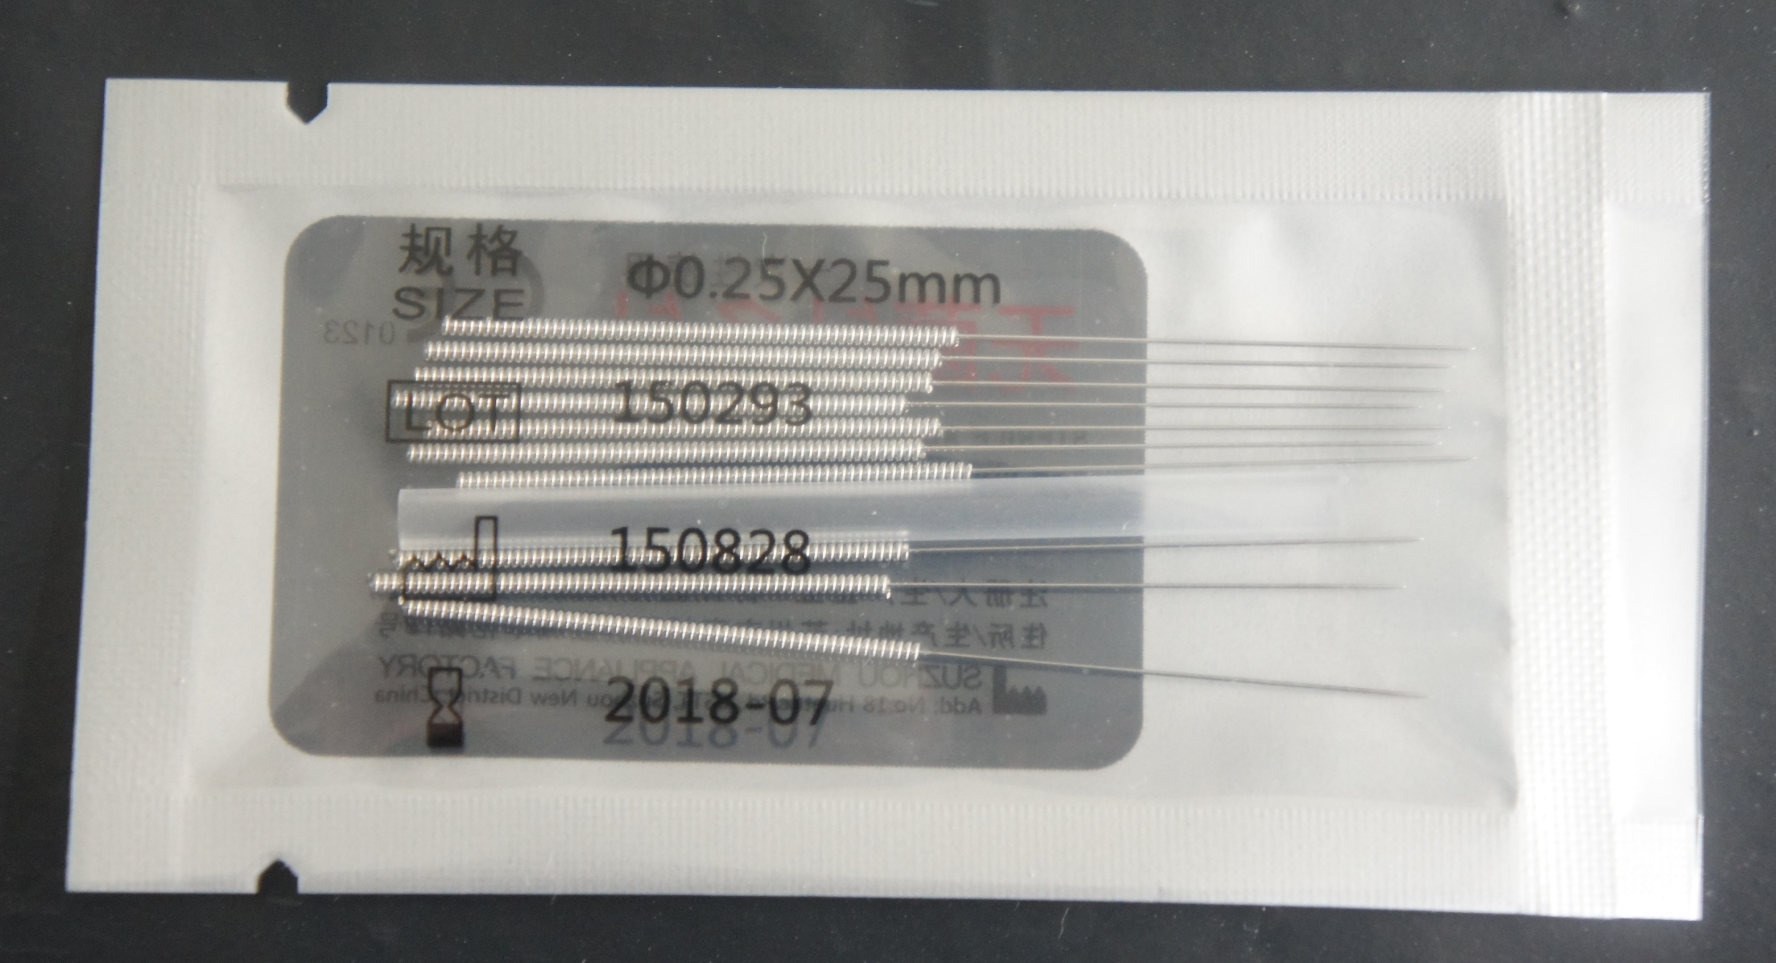 Tony tony disposable acupuncture needle 200 box handle needle acupuncture needle acupuncture needle acupuncture needle needles disposable 200 box acupuncture needle